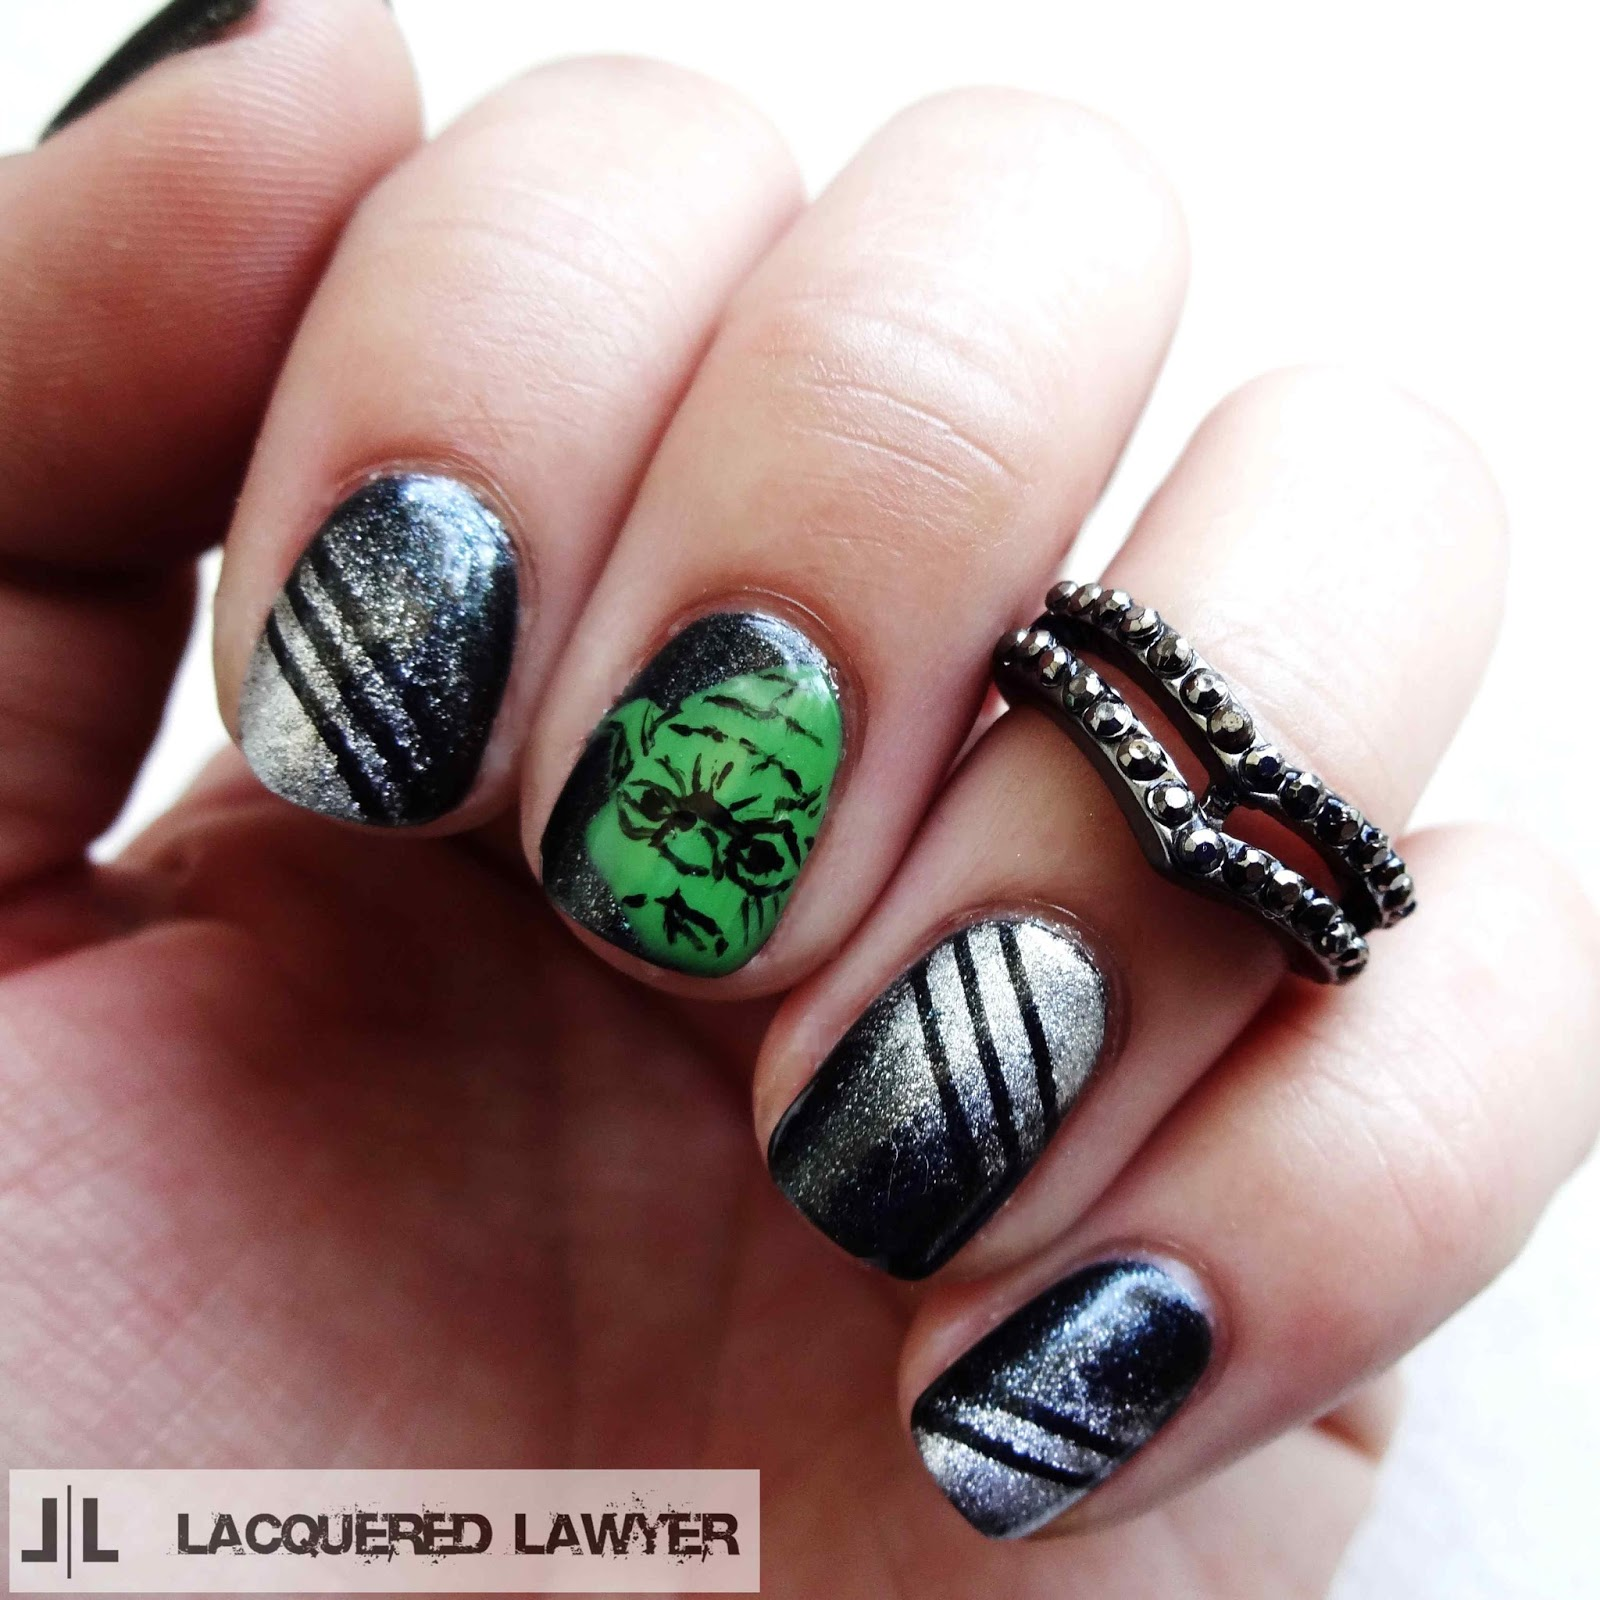 Lacquered Lawyer | Nail Art Blog: May The Fourth Be With You